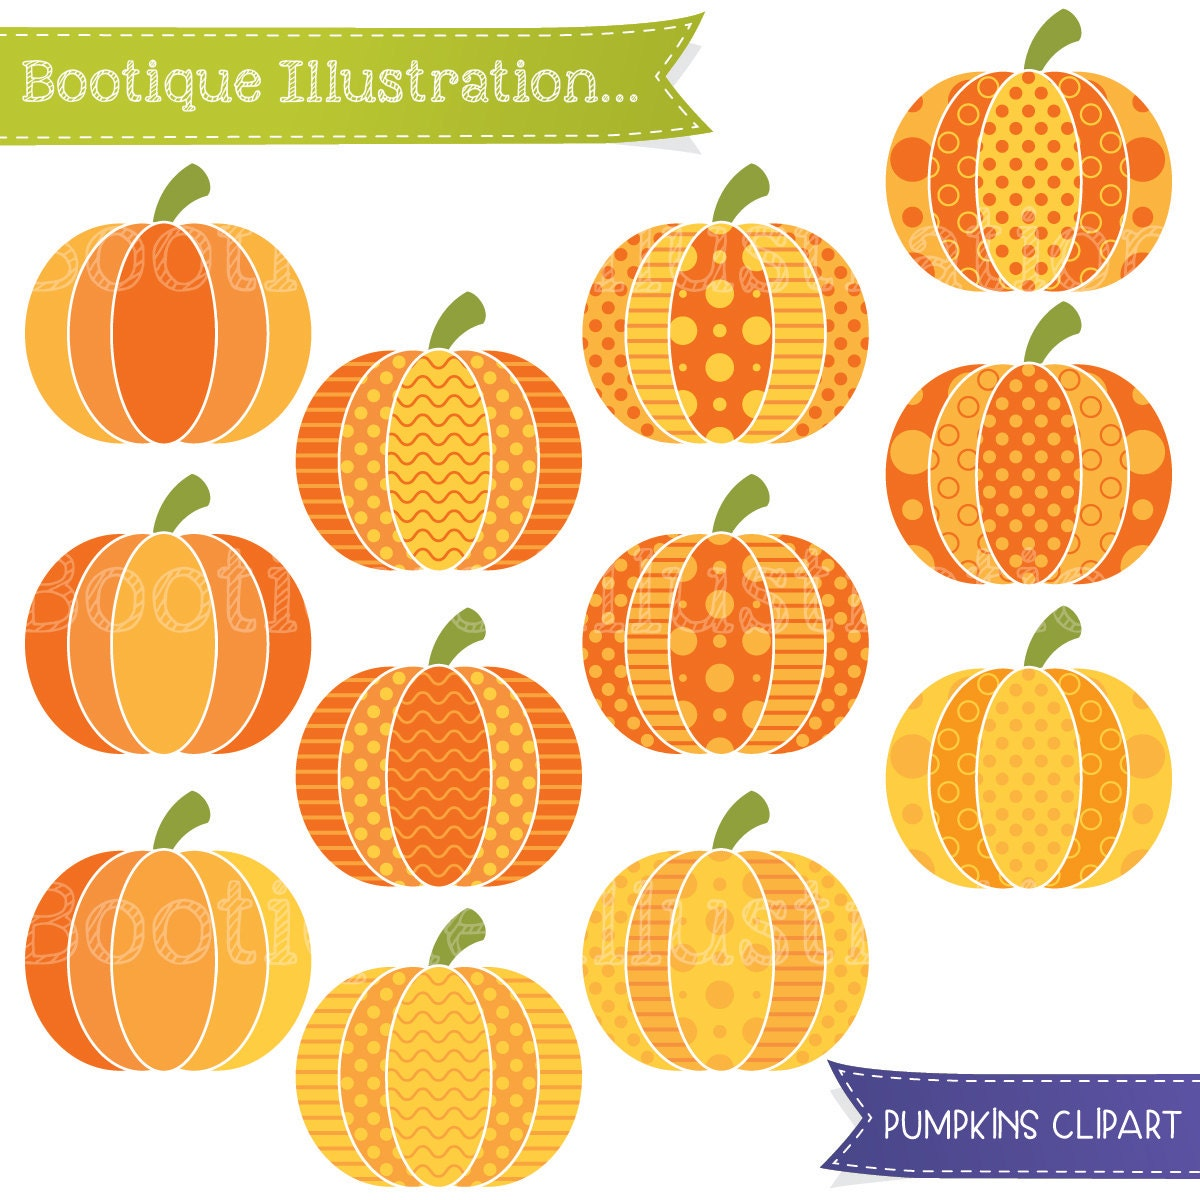 Patterned Pumpkin Clip Art